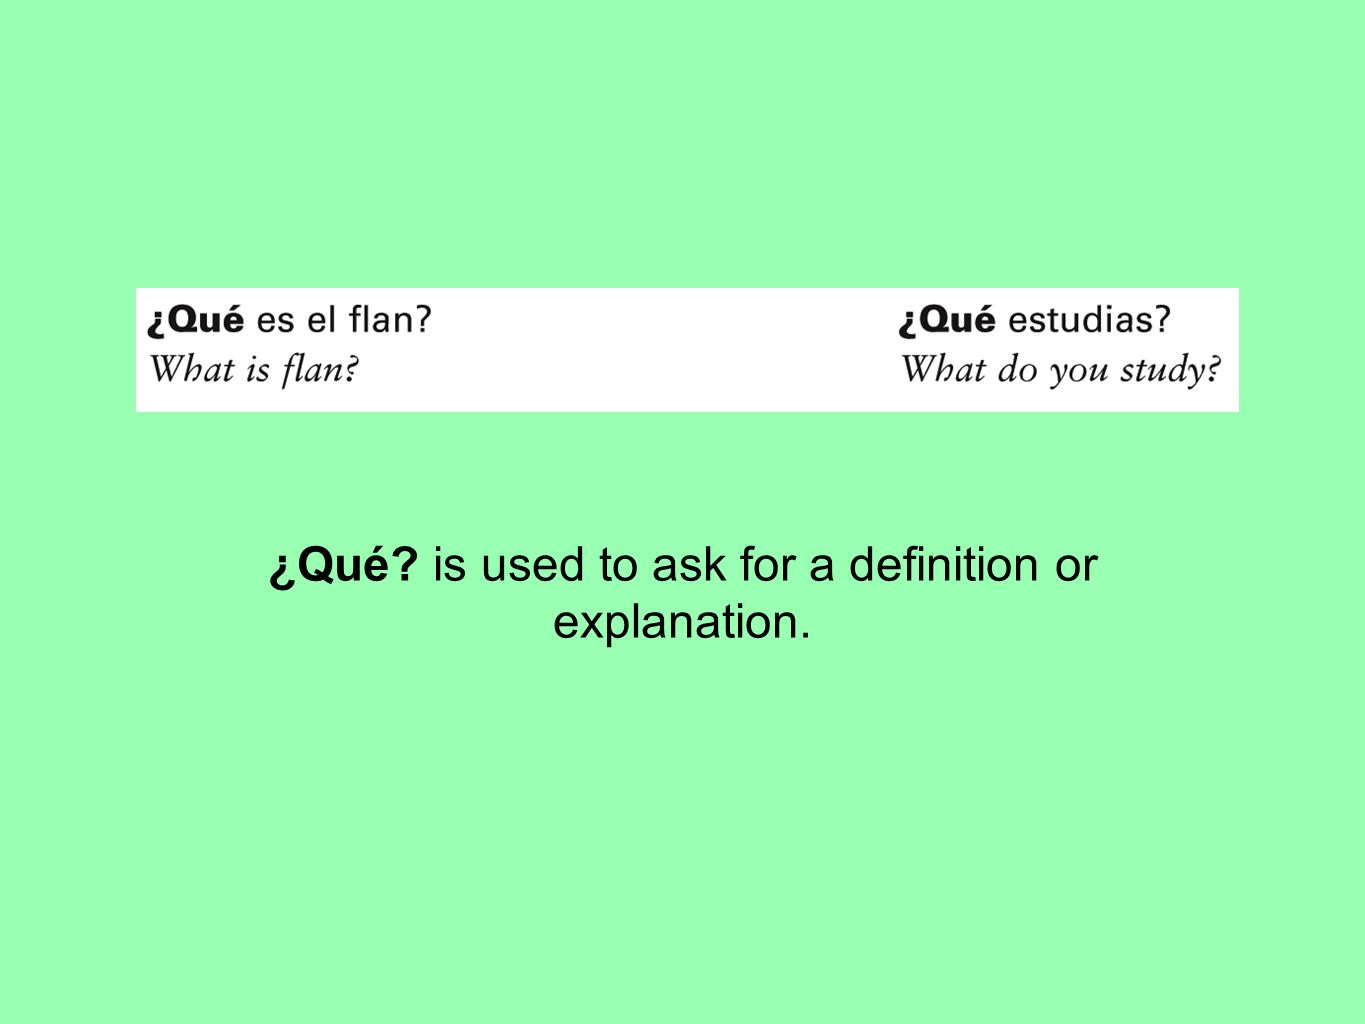 ¿Qué is used to ask for a definition or explanation.